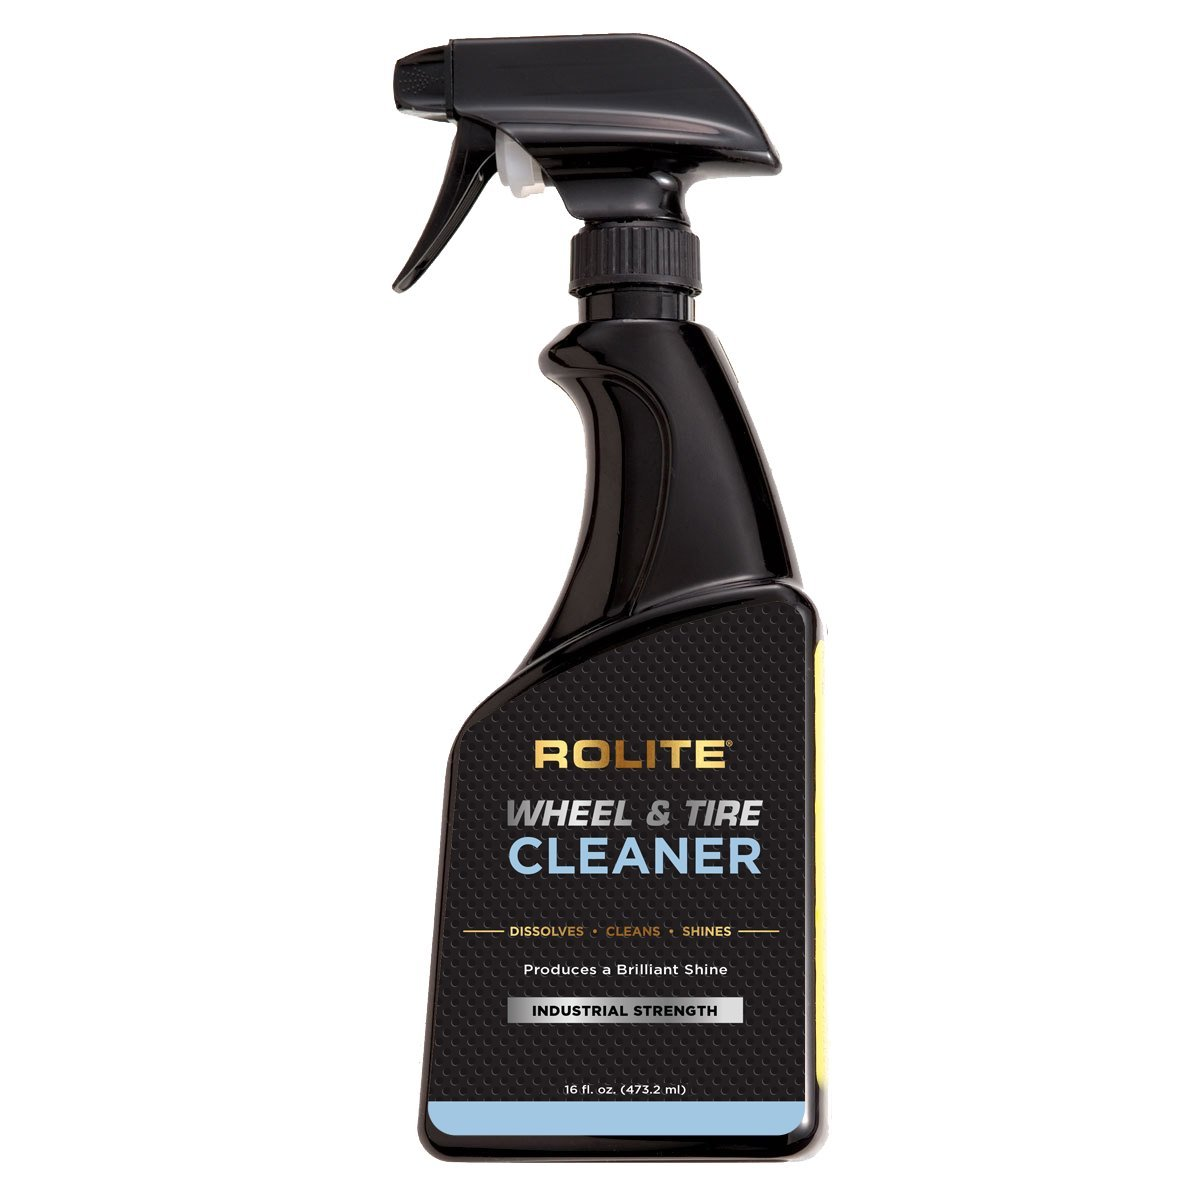 Rolite Wheel and Tire Cleaner (16 fl. oz.) - Acid Free and Safe for All Finishes Including Clear-Coats, Dissolves Brake Dust & Road Grime Instantly